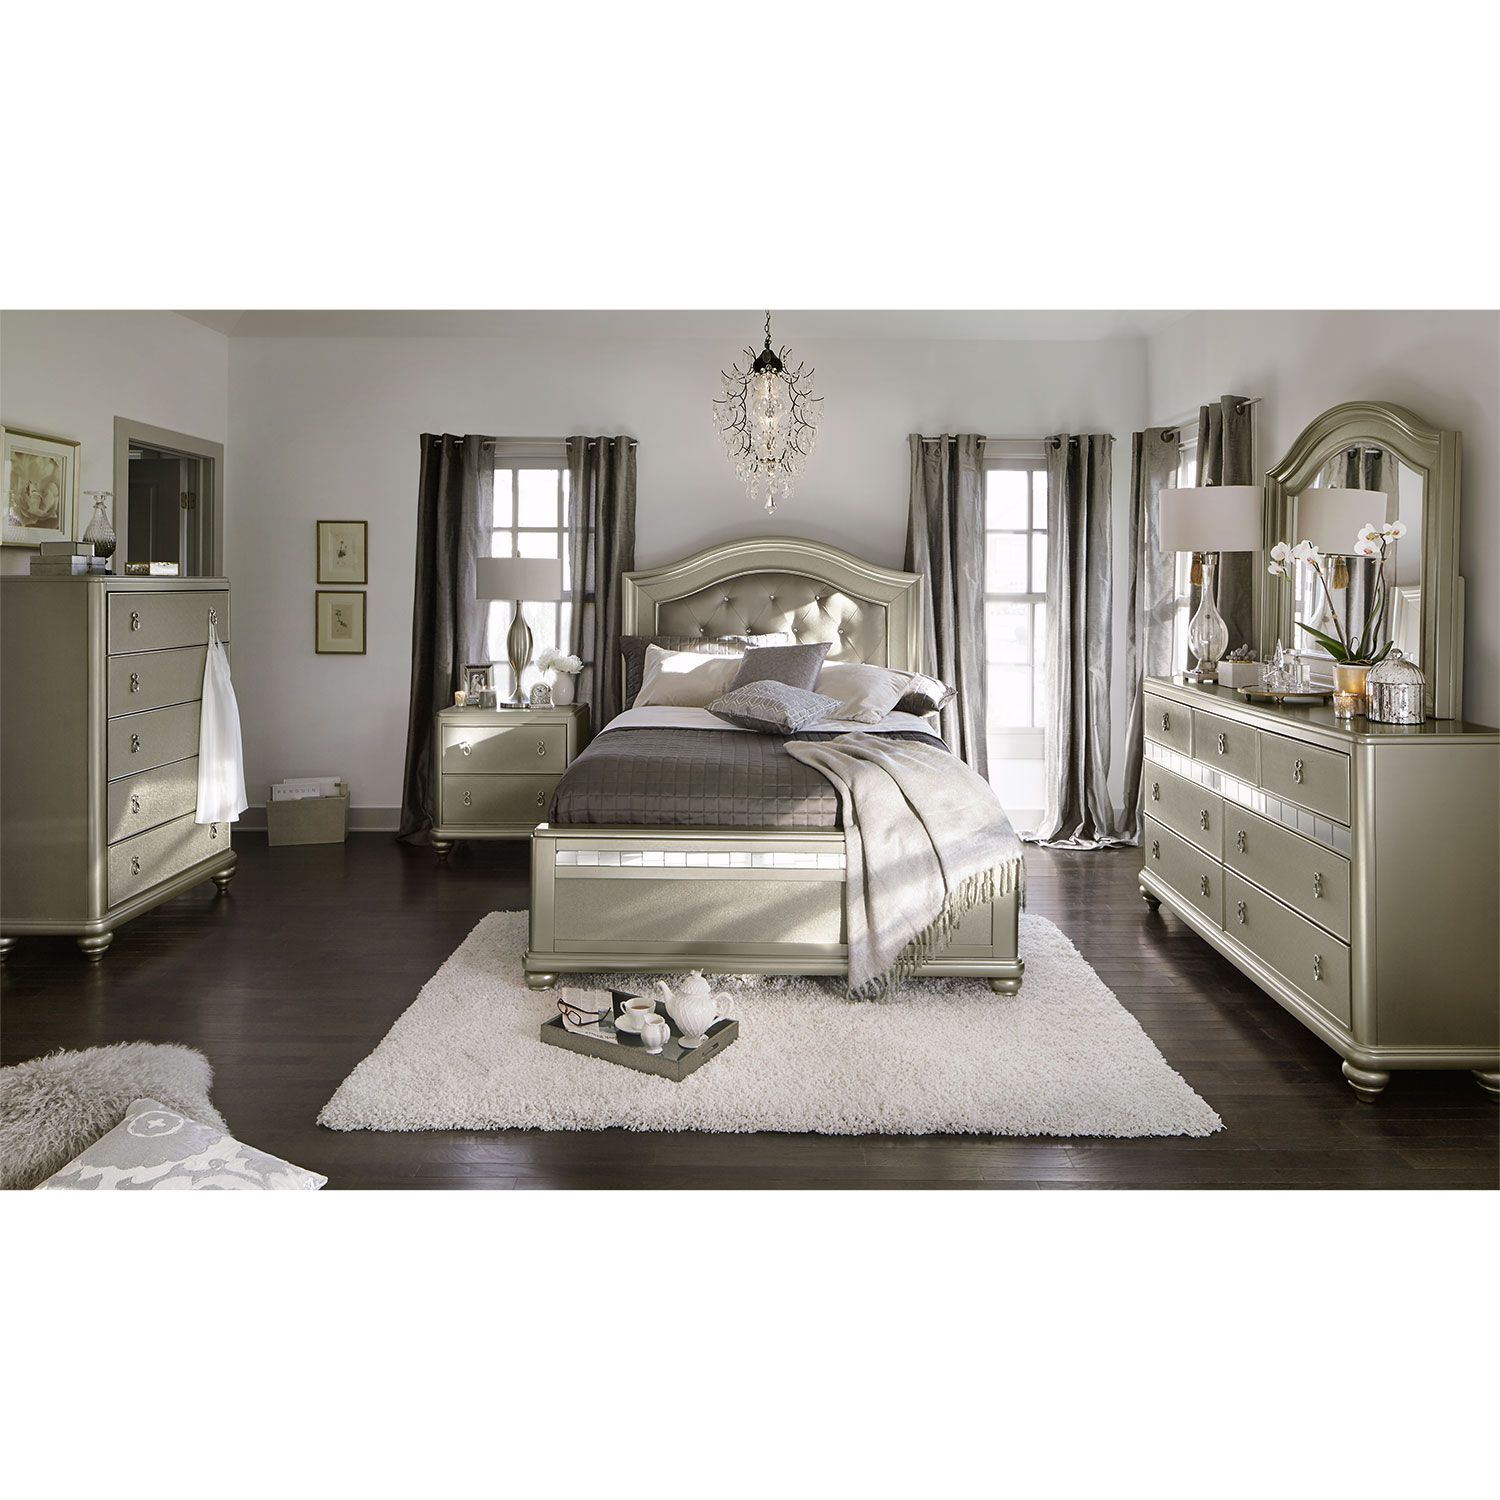 platinum resplendence the serena king bed offers an air of